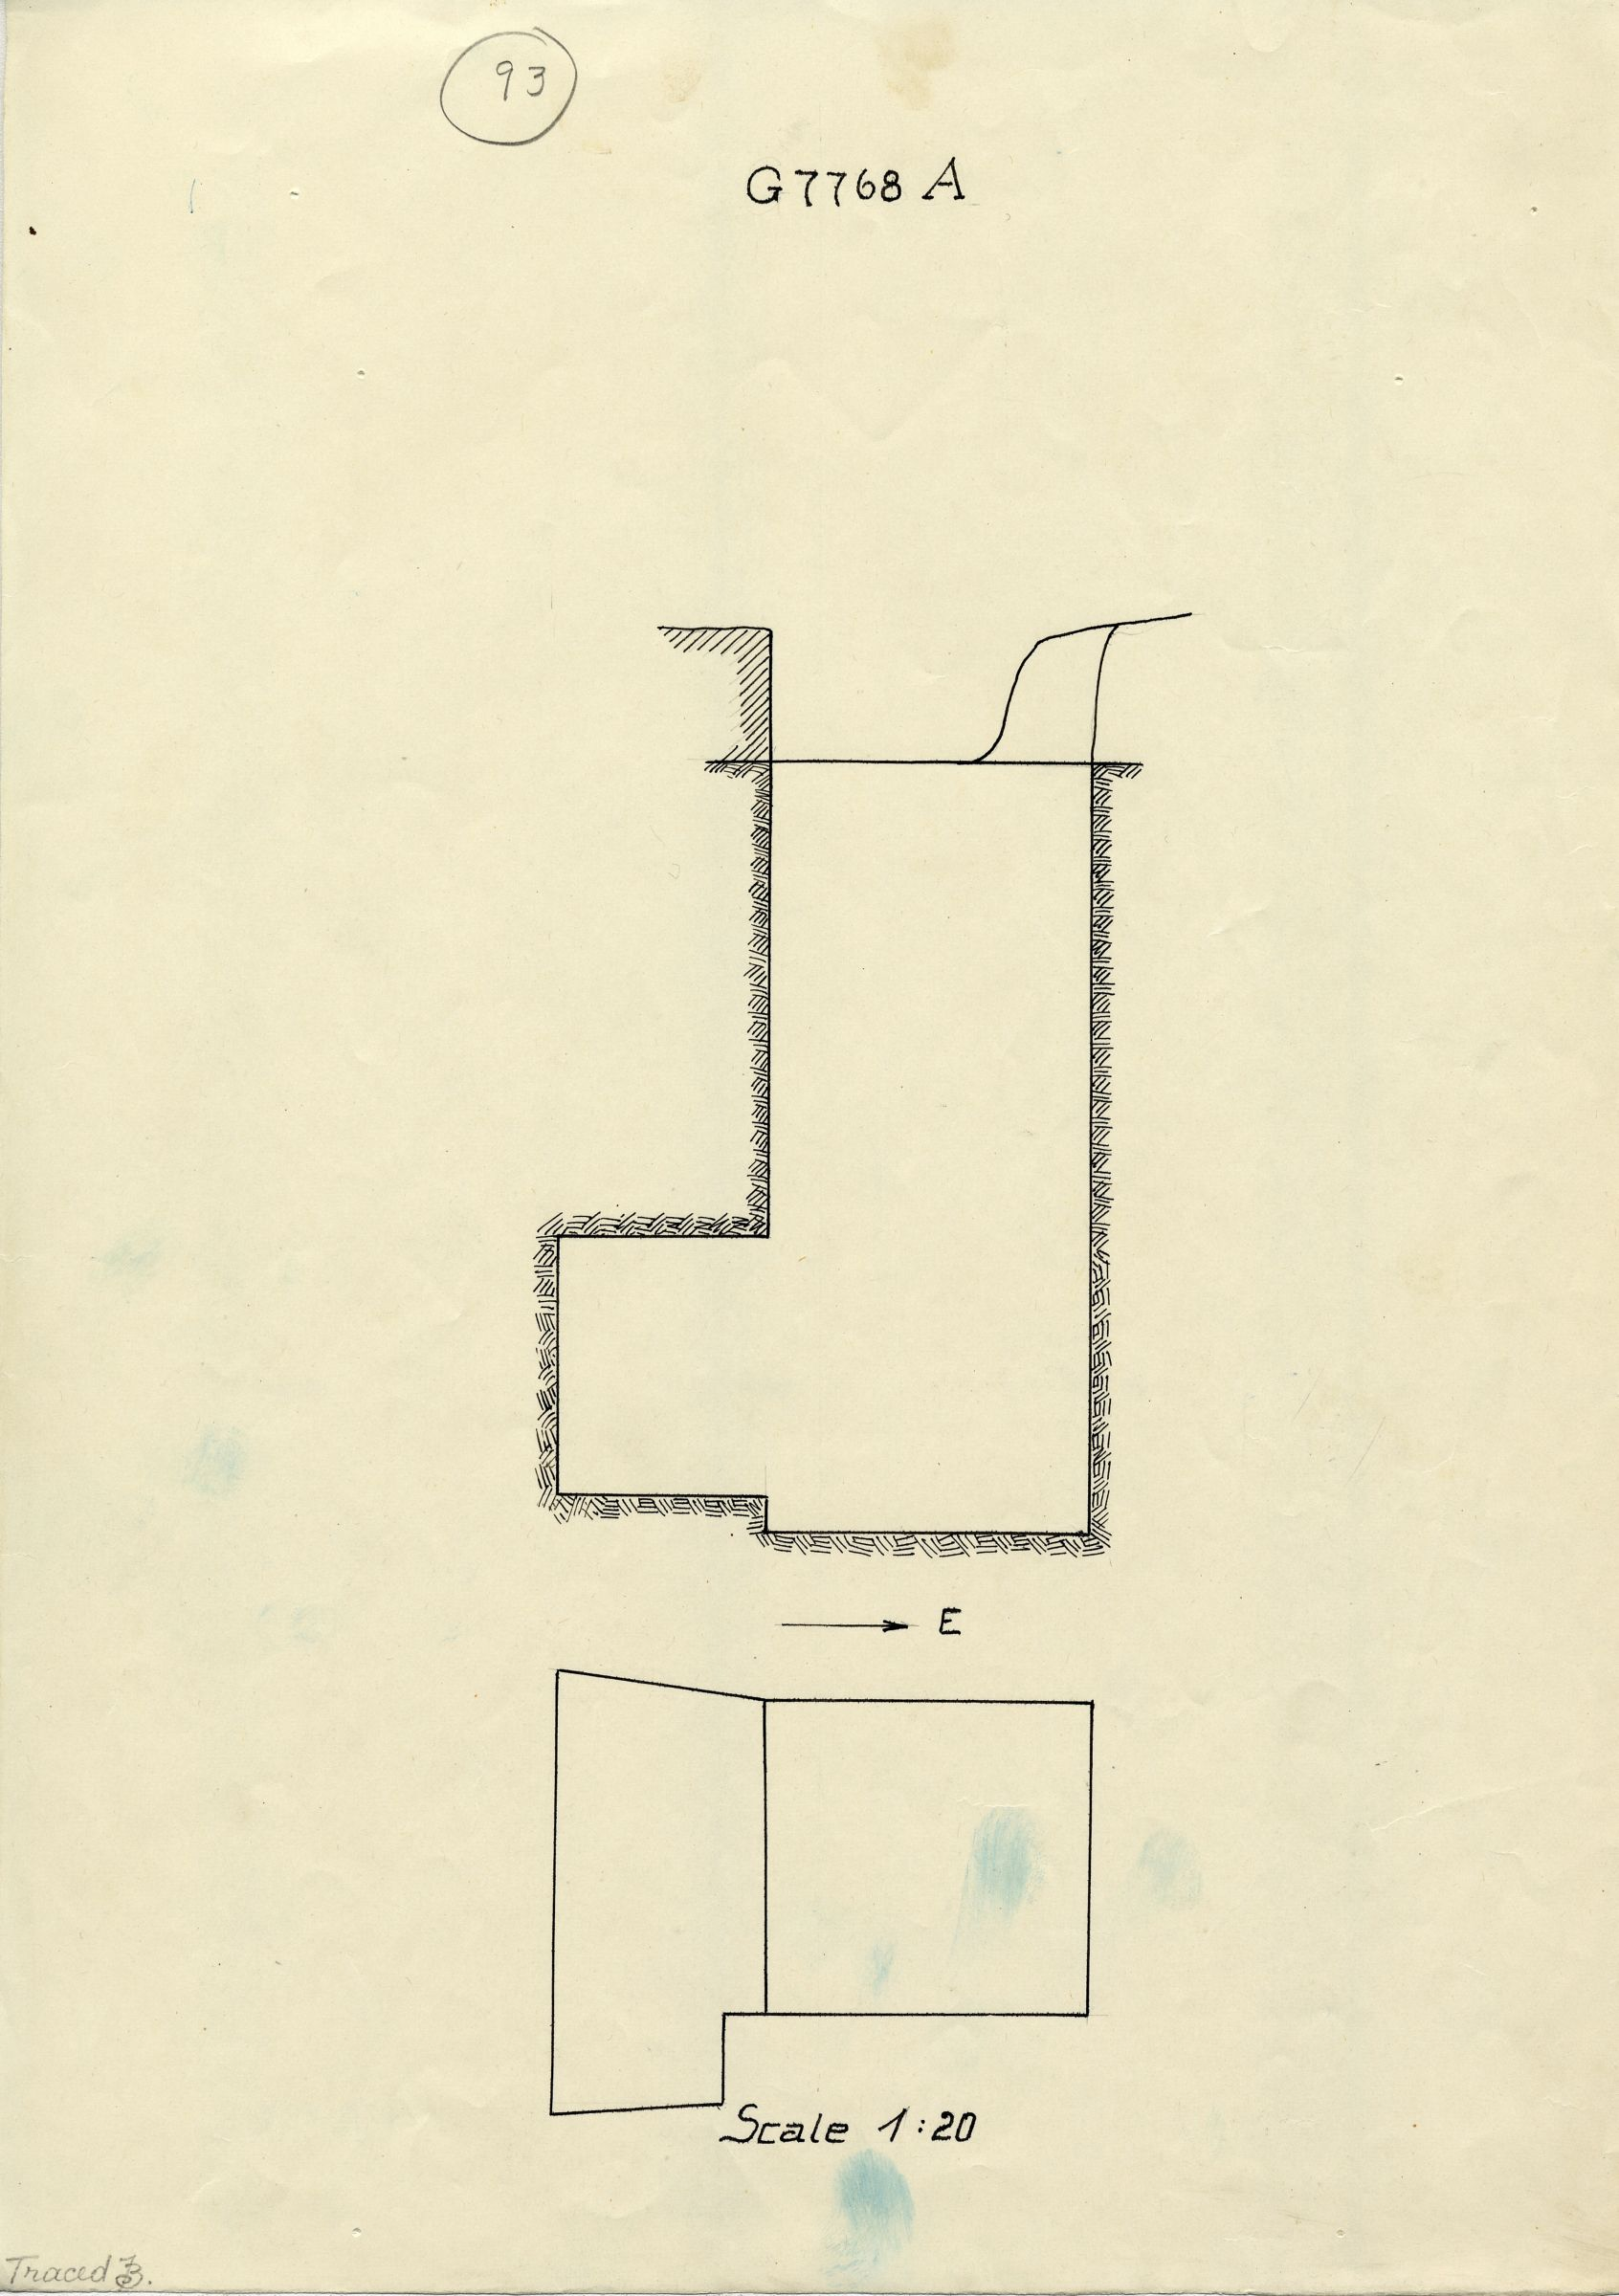 Maps and plans: G 7768, Shaft A